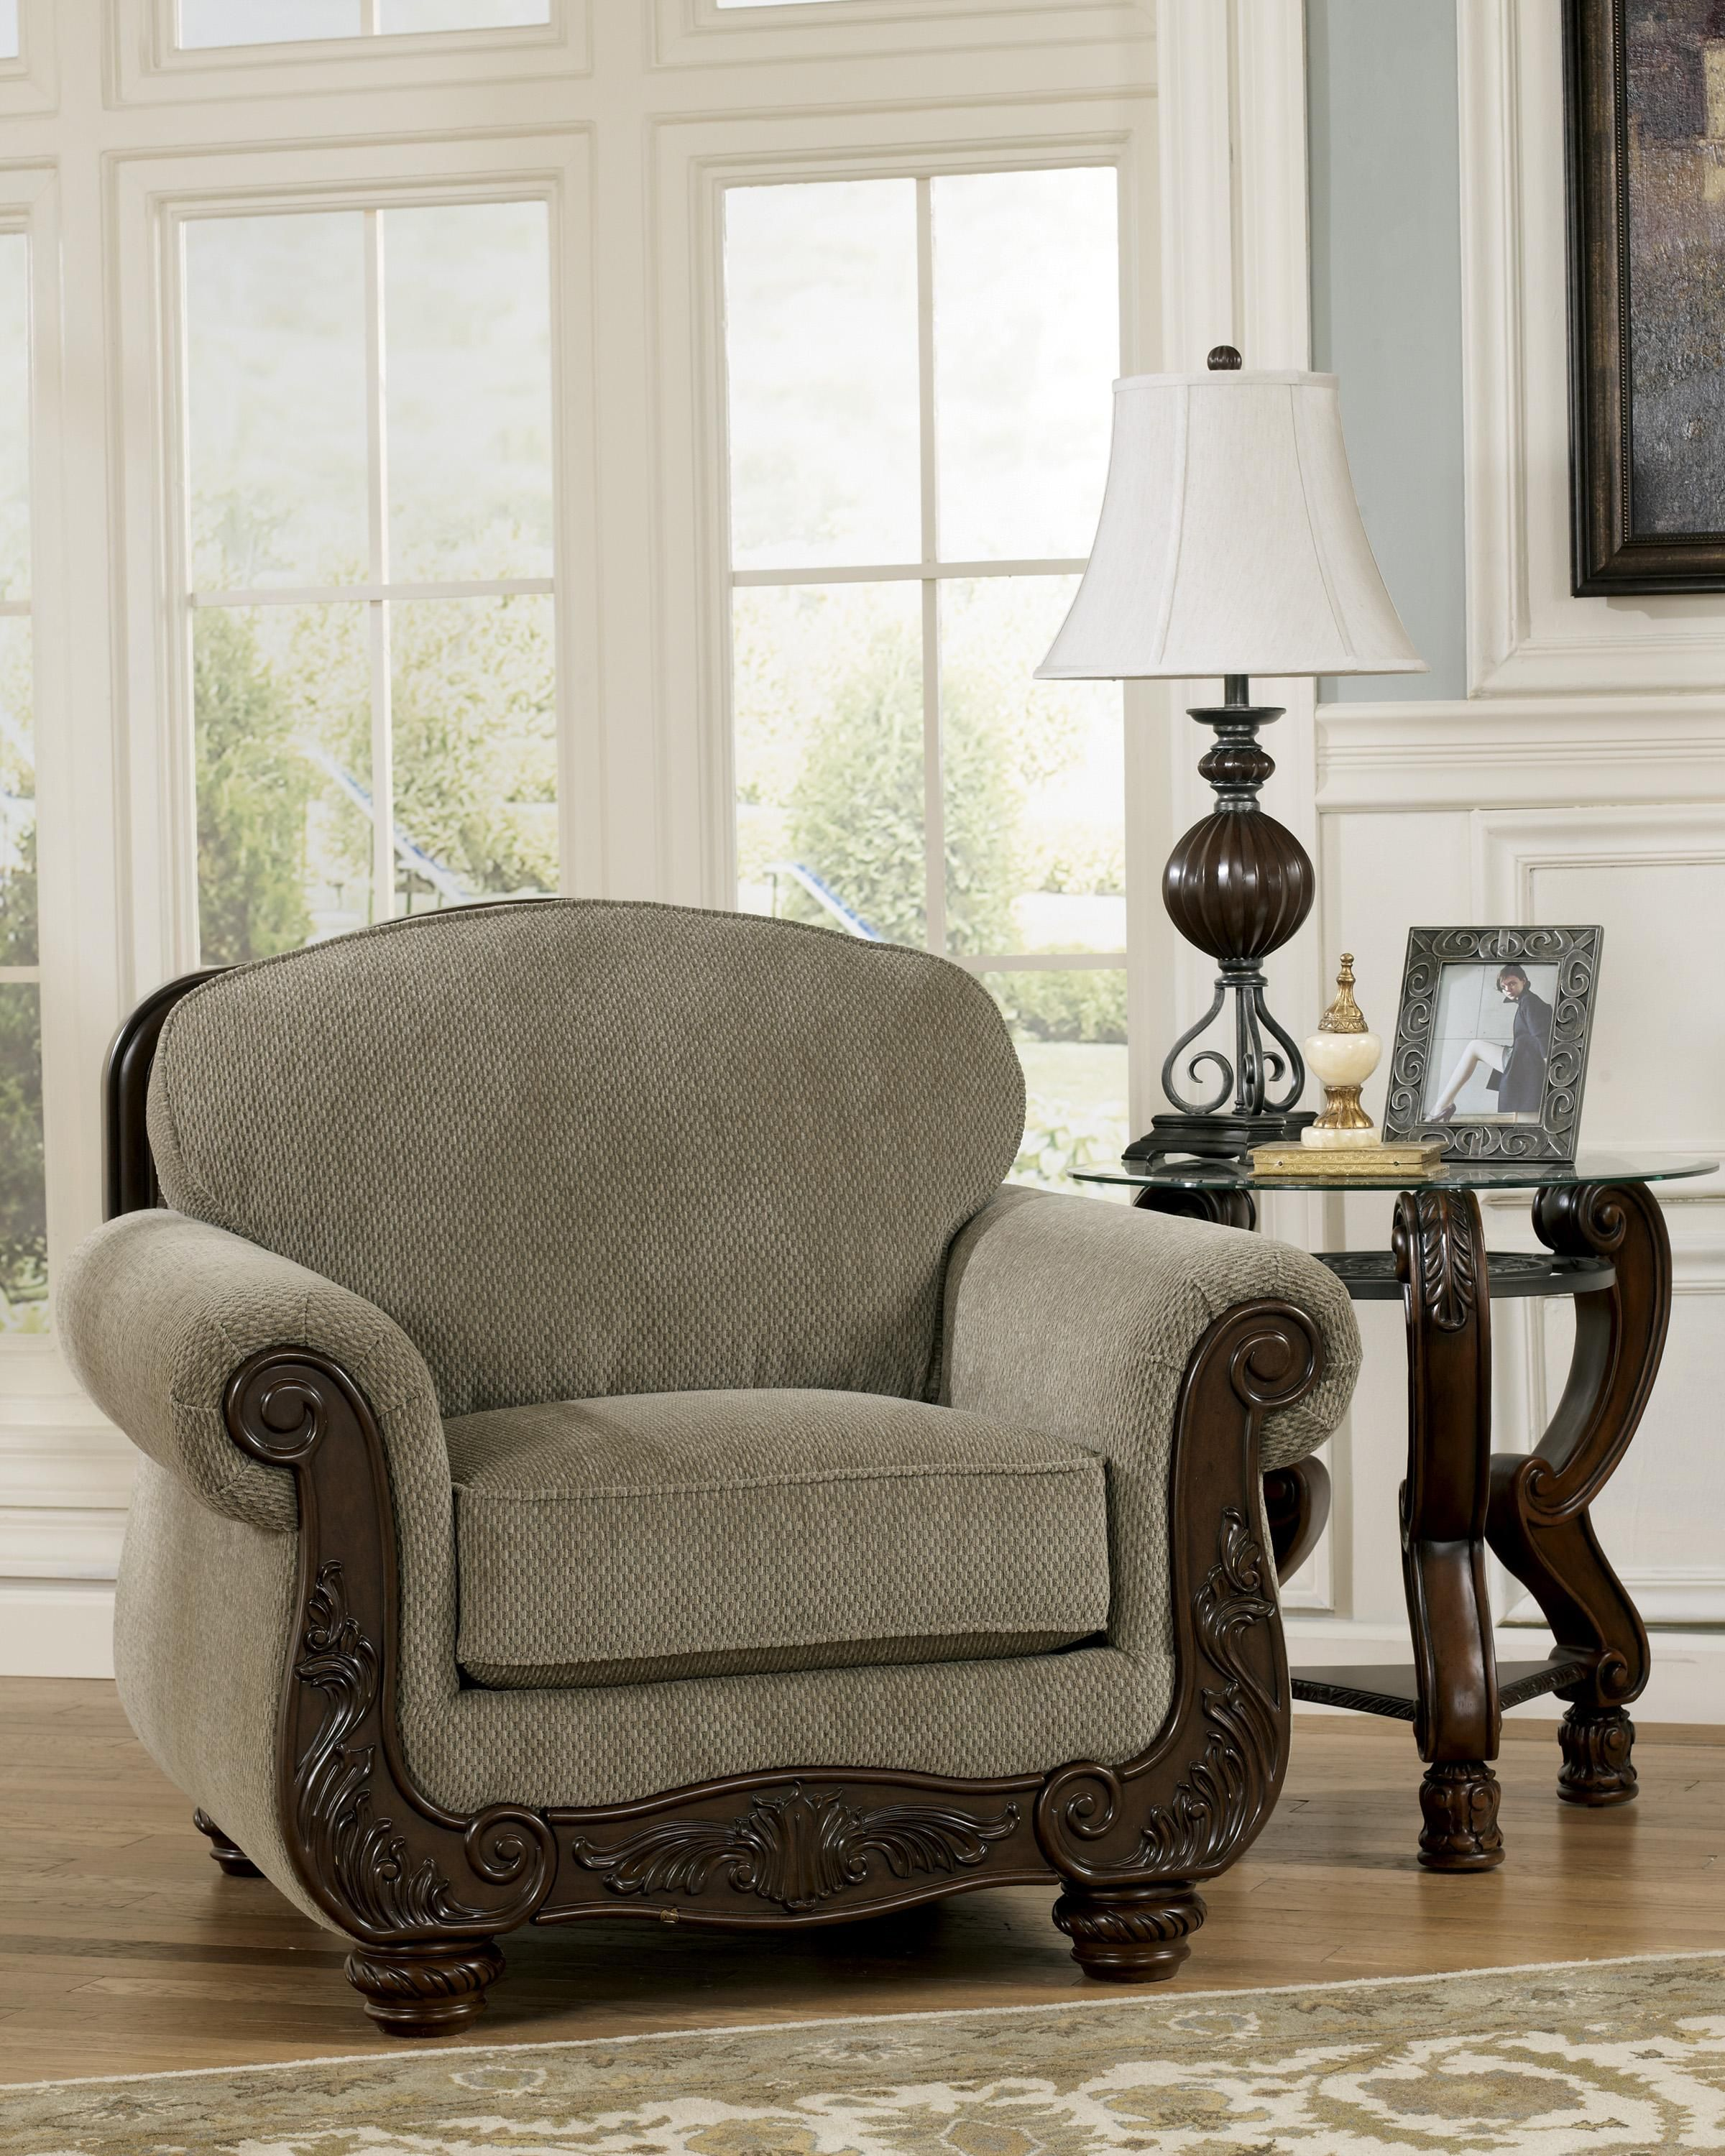 Signature design by ashley furniture martinsburg meadow traditional chair s appliance furniture